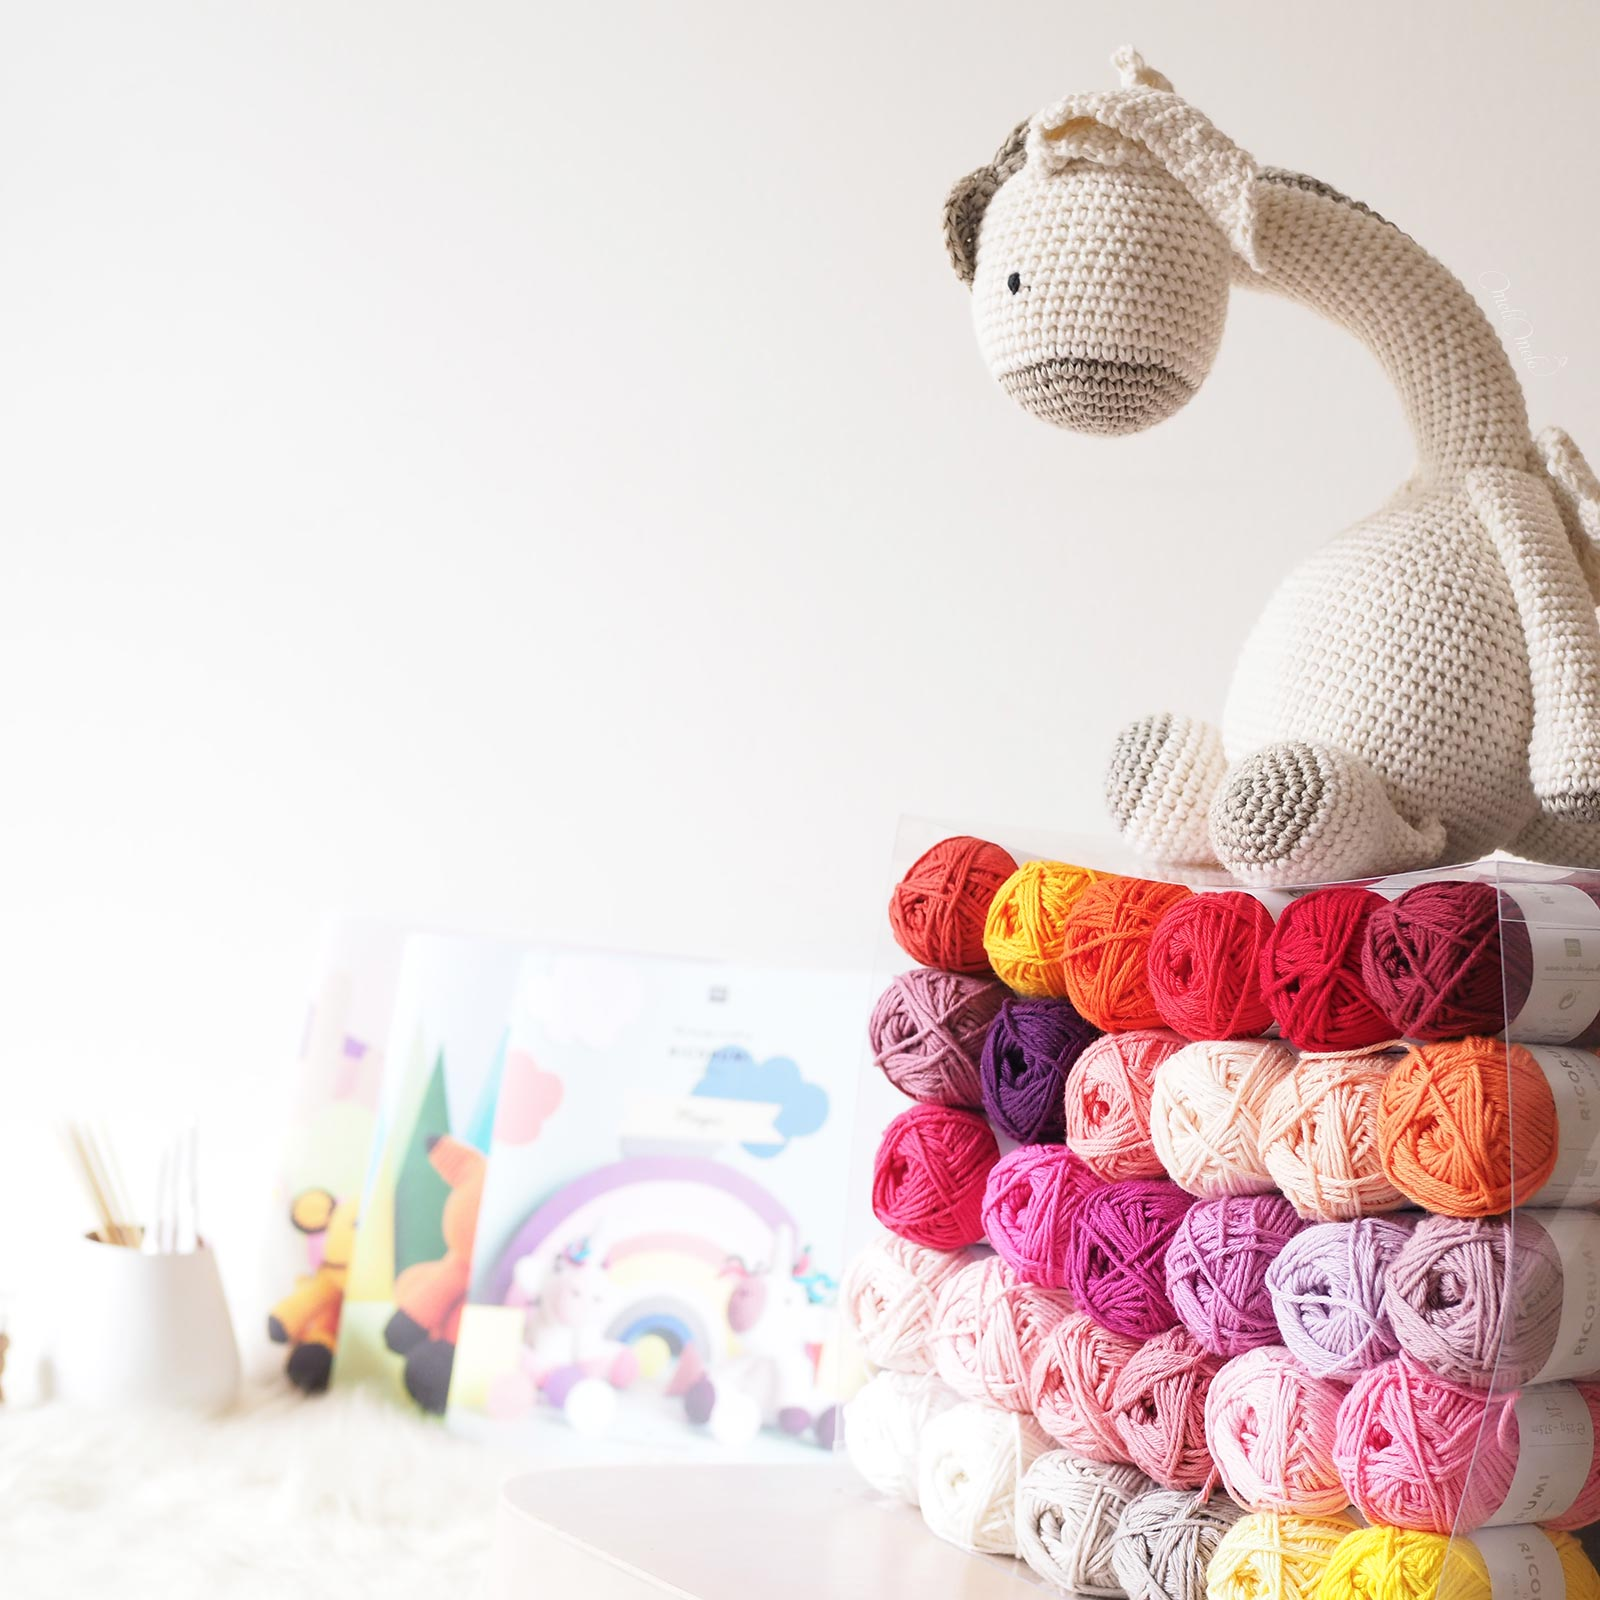 bébé dragon crochet laboutiquedemelimelo accueil fil patrons set box Ricorumi